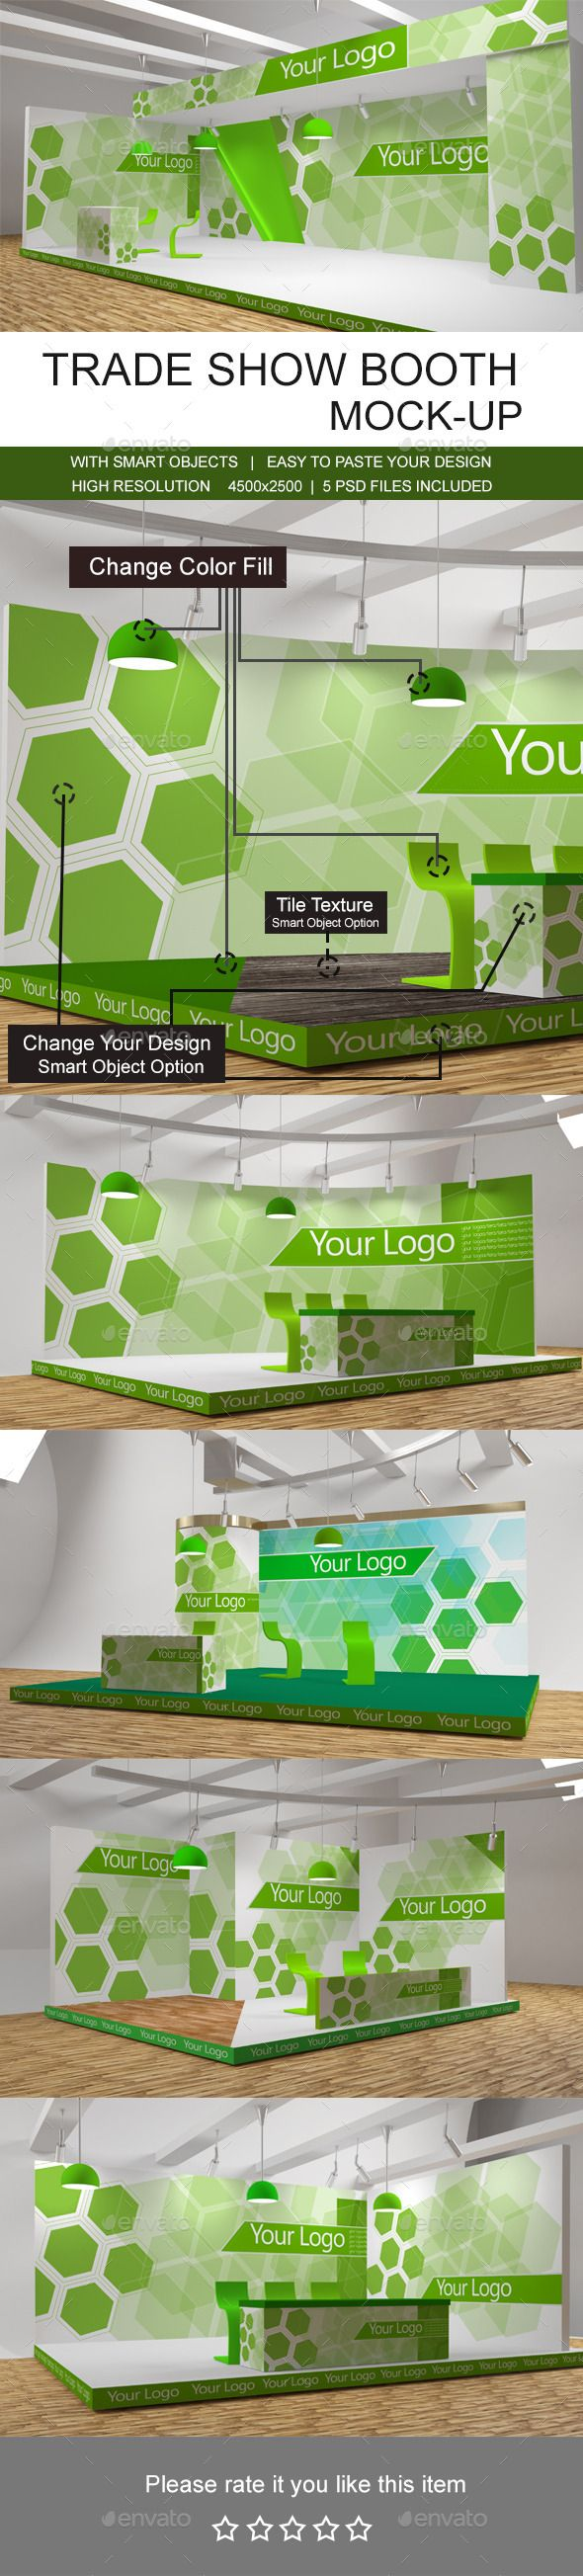 Trade Show Booth Mockups — Photoshop PSD #clean #mint • Available here → https://graphicriver.net/item/trade-show-booth-mockups/10323723?ref=pxcr